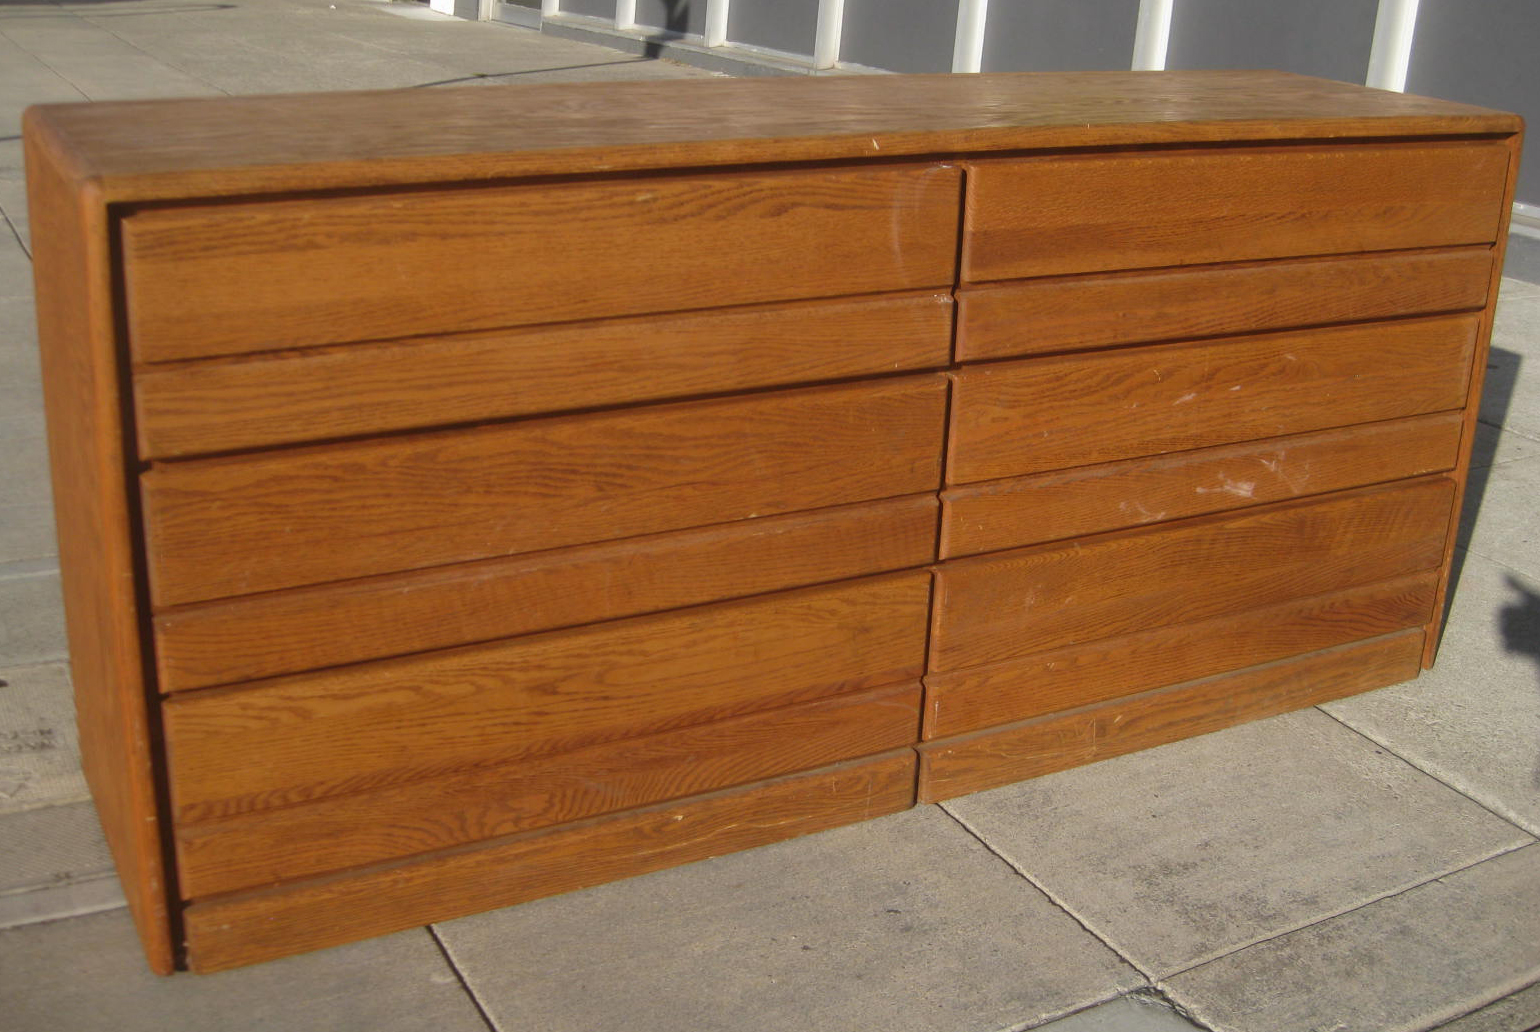 uhuru furniture collectibles sold oak veneer dresser. Black Bedroom Furniture Sets. Home Design Ideas